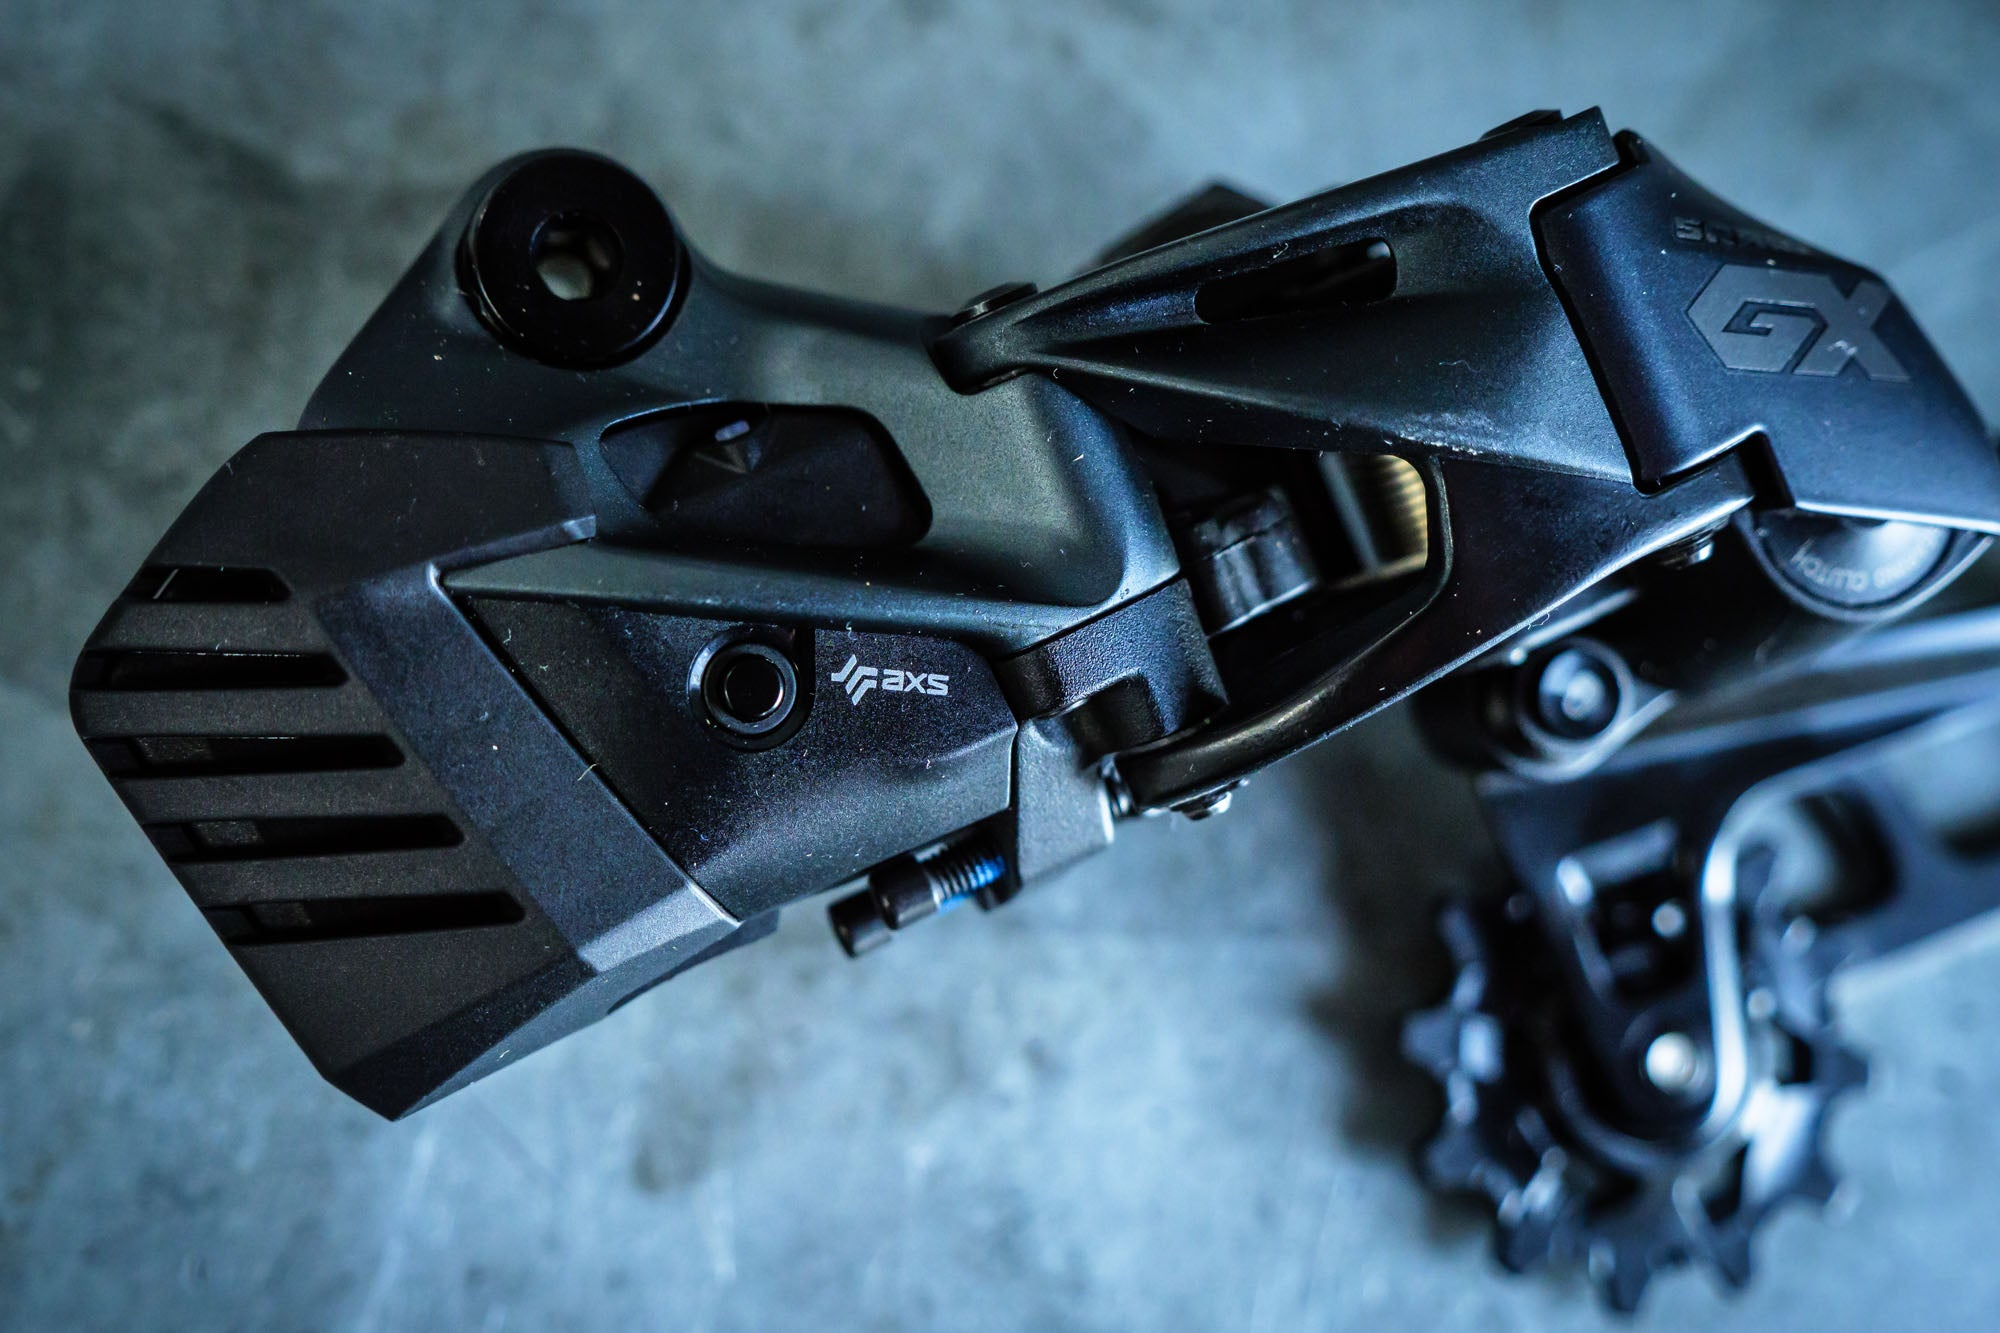 All the electronic components of the GX AXS derailleur, and even their housings, are identical to XX1 and X01 AXS.